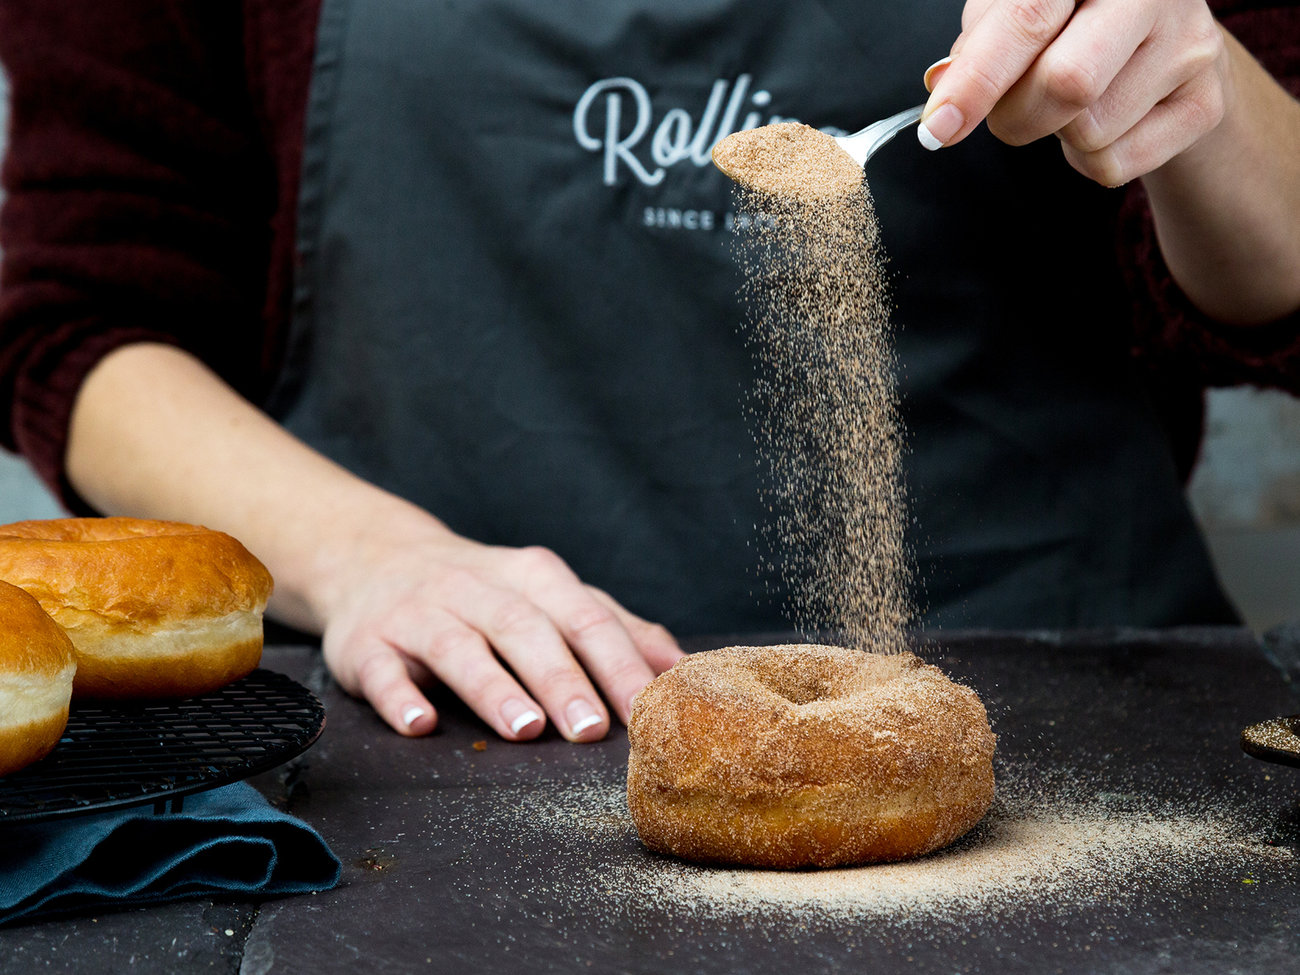 Rolling Donut Cafe in Dublin